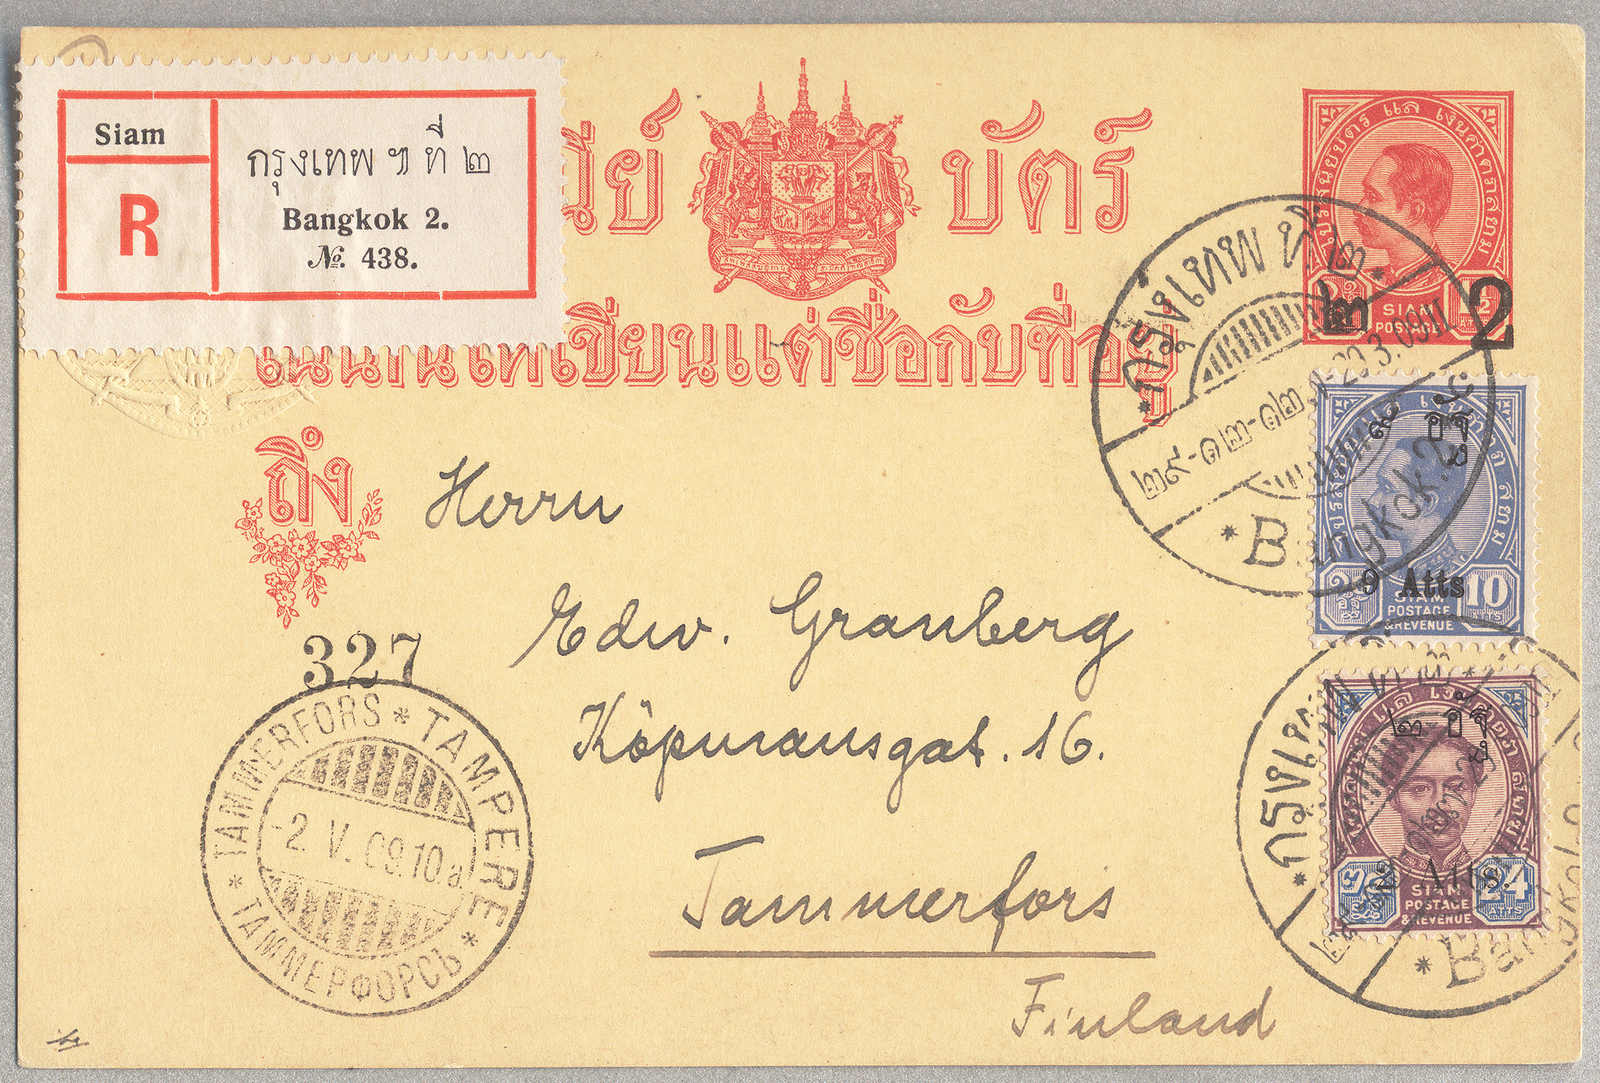 Lot 30022 - Asia without China/Malaya thailand -  classicphil GmbH 8'th classicphil Auction - Day 3